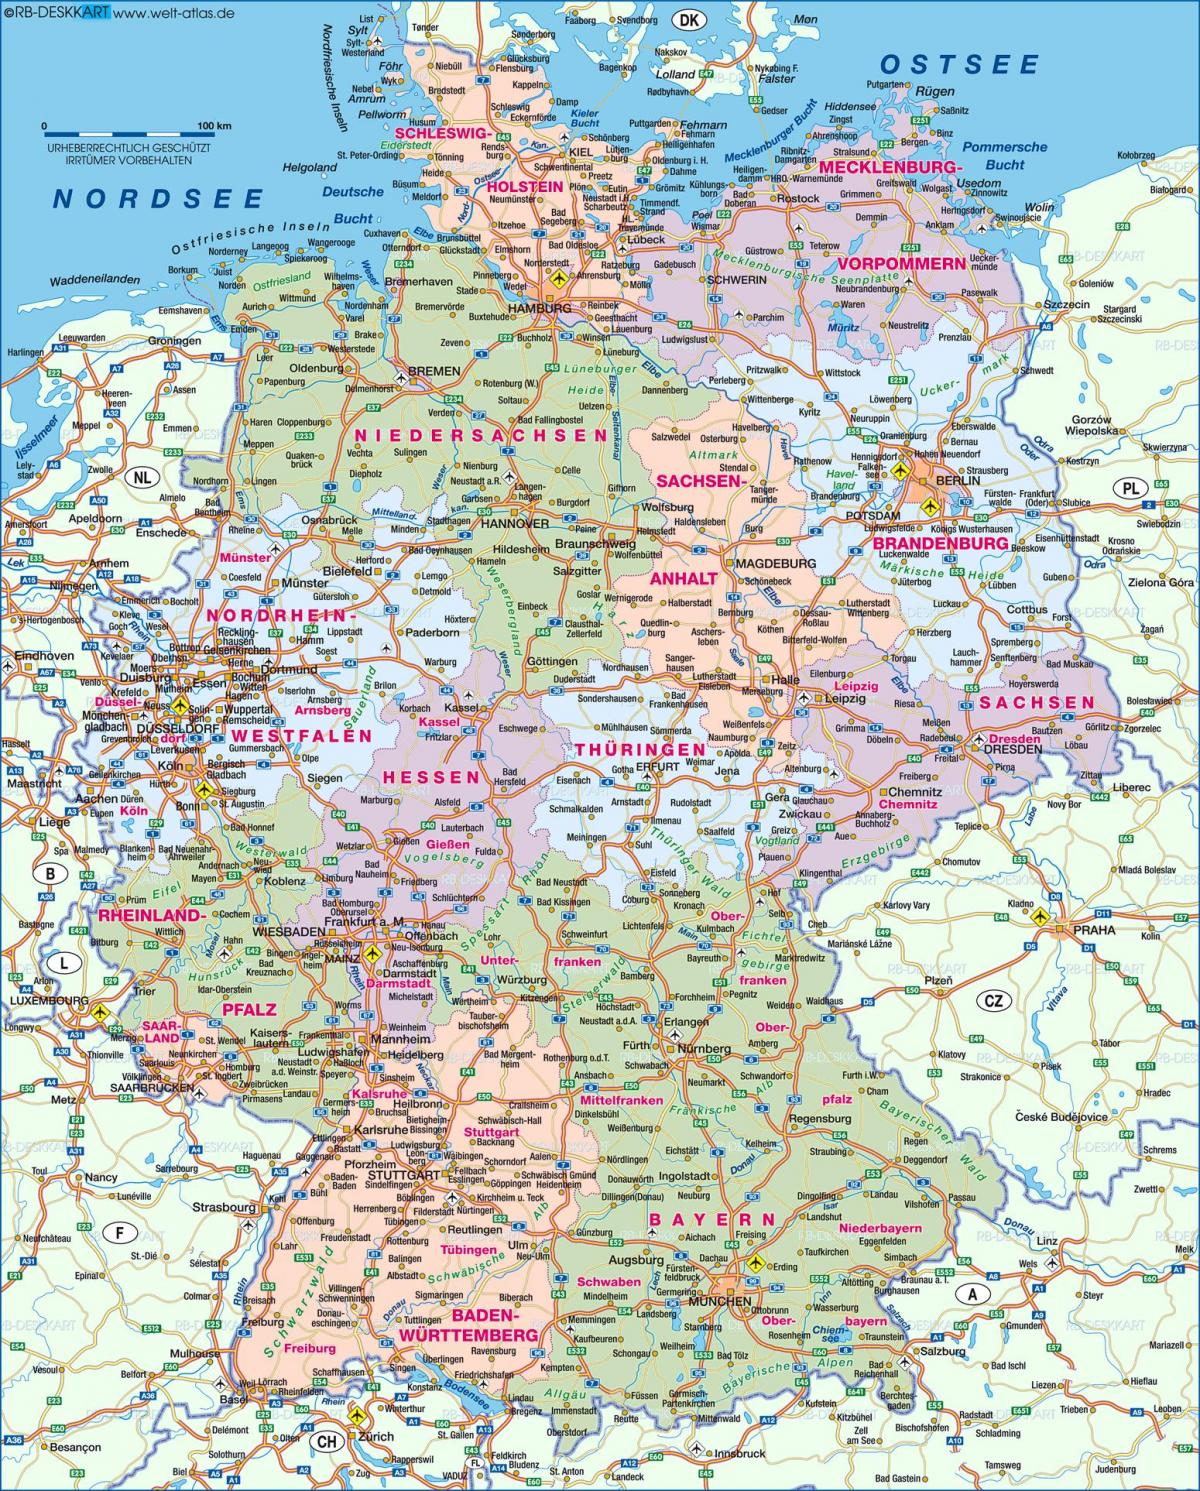 show me a map of Germany